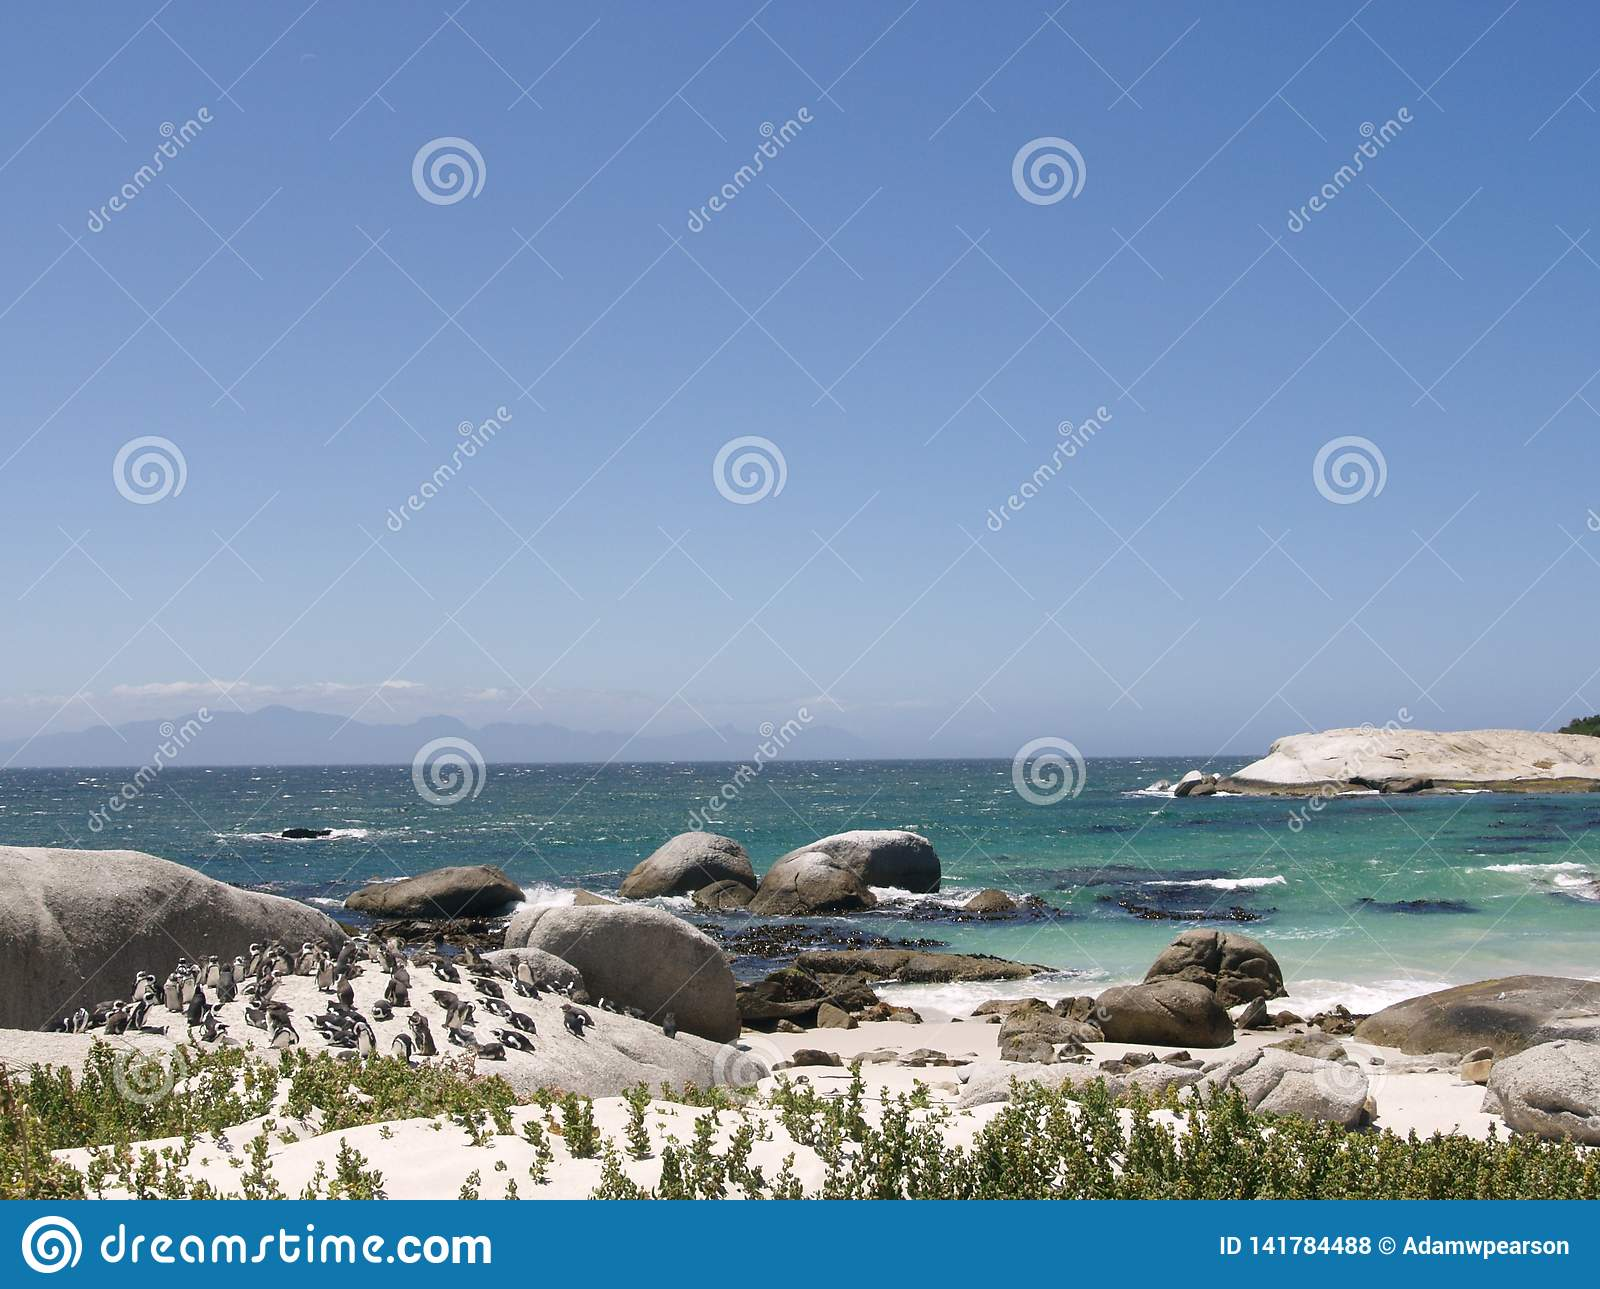 Colony of Penguins at Boulders Beach, Cape Town, South Africa